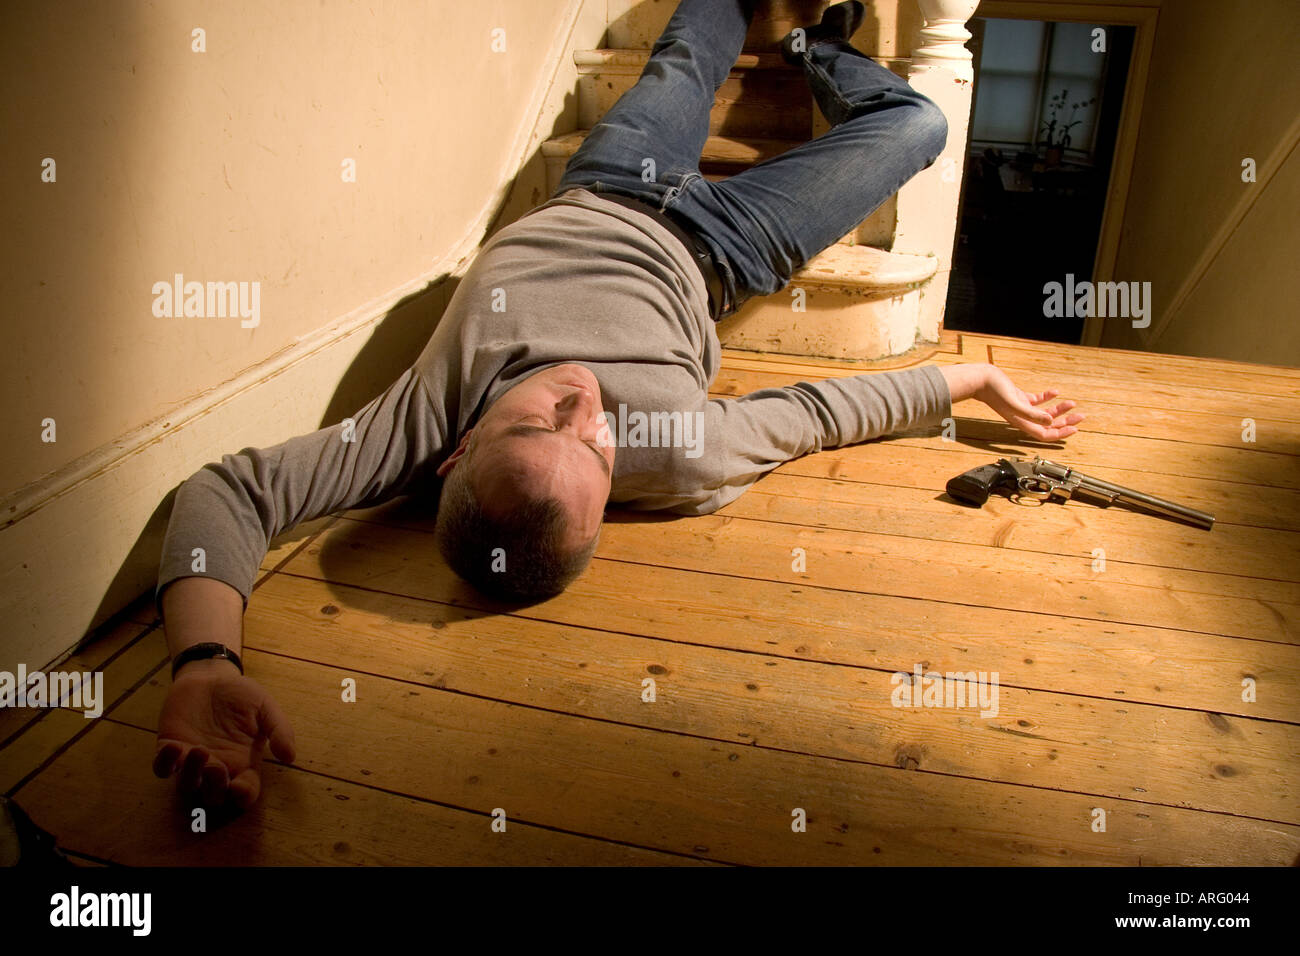 Body of dead man lying on the floor at the bottom of stairs with a handgun  by his side